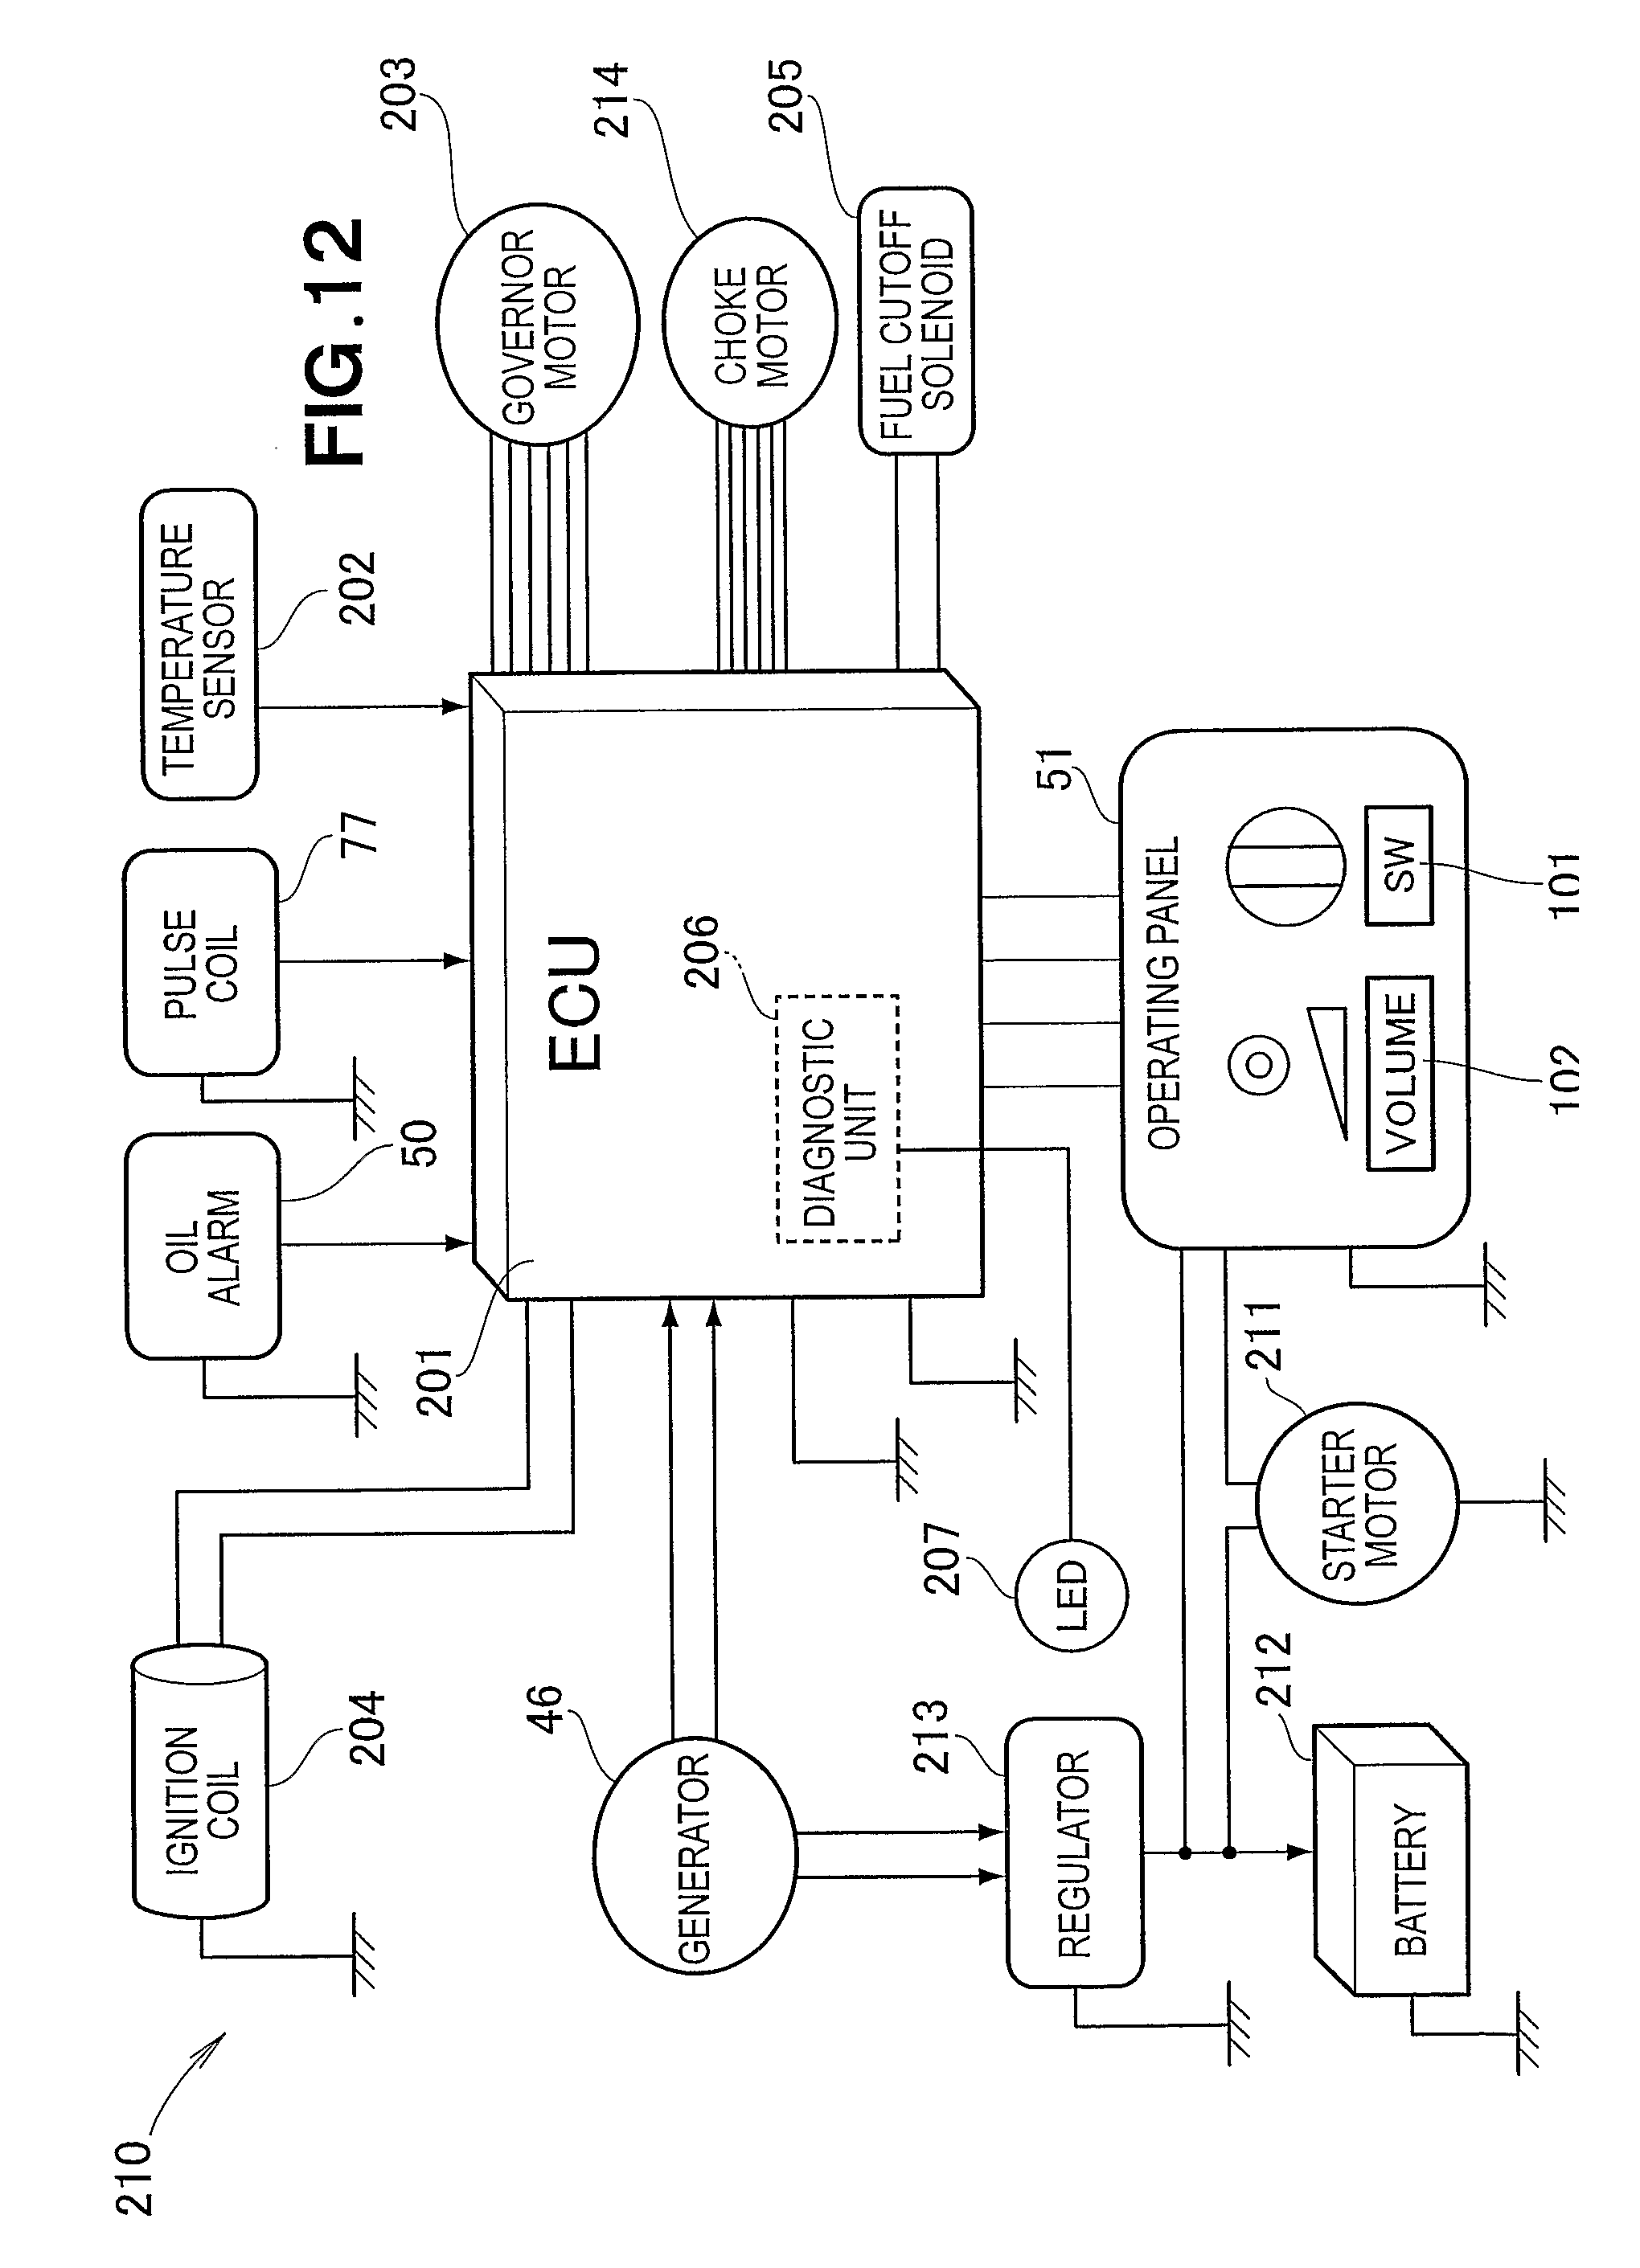 engine interface module 630 088 wiring diagram